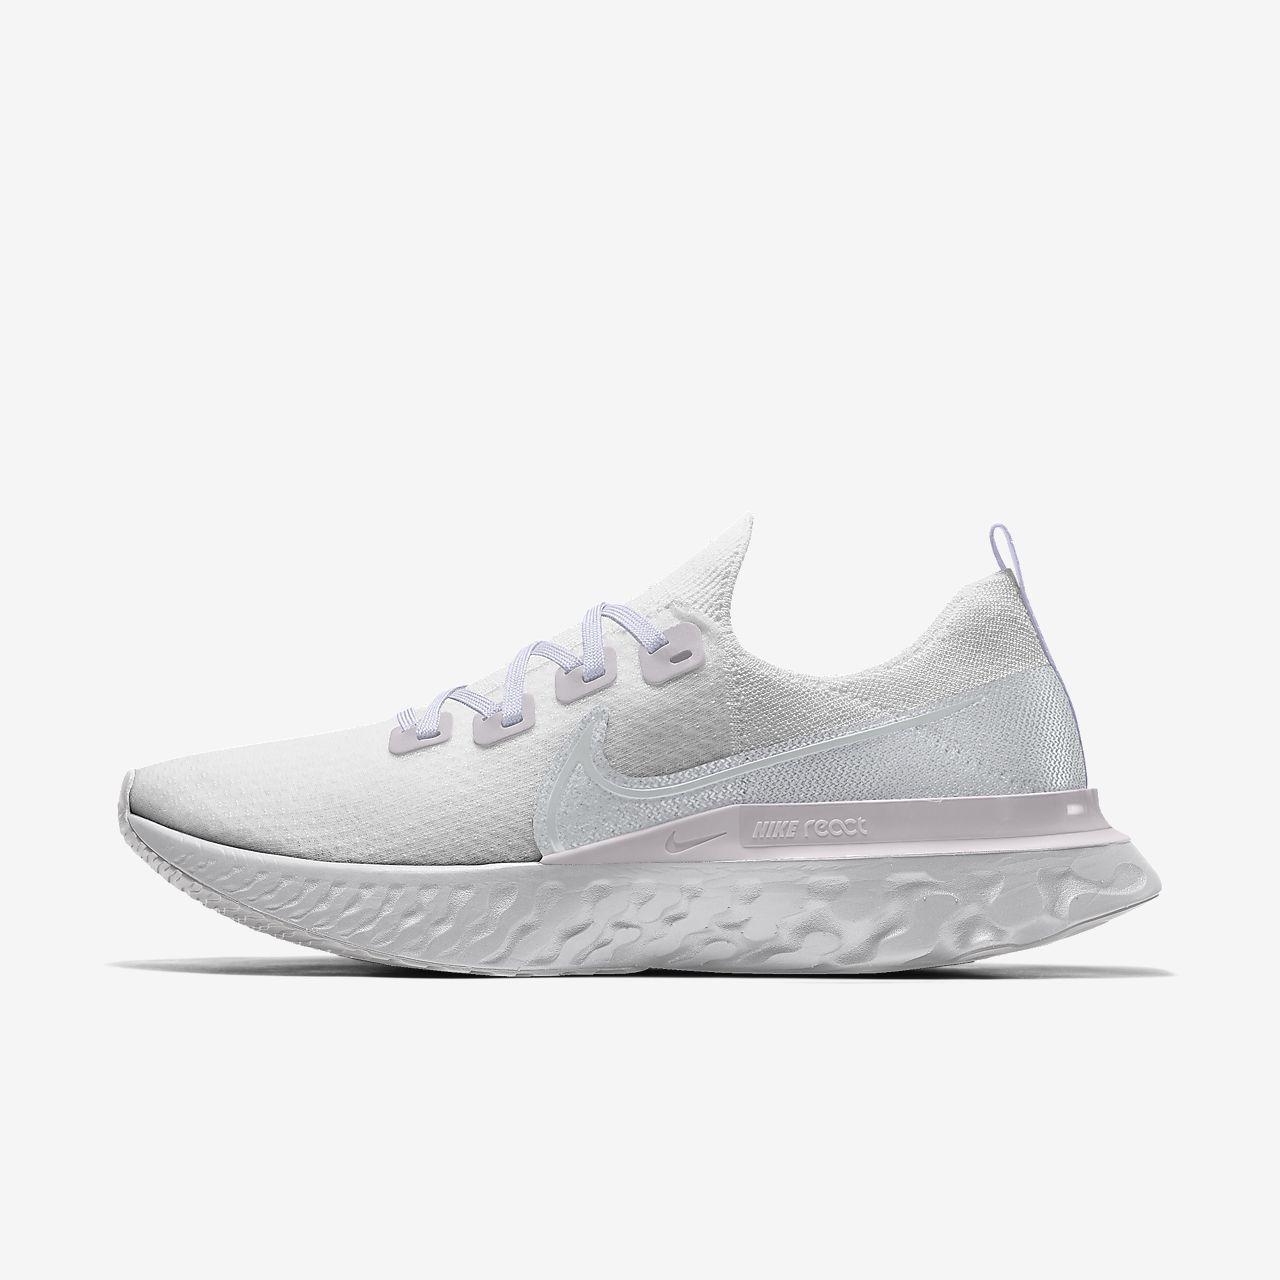 Nike React Infinity Run Flyknit By You 專屬訂製女款跑鞋